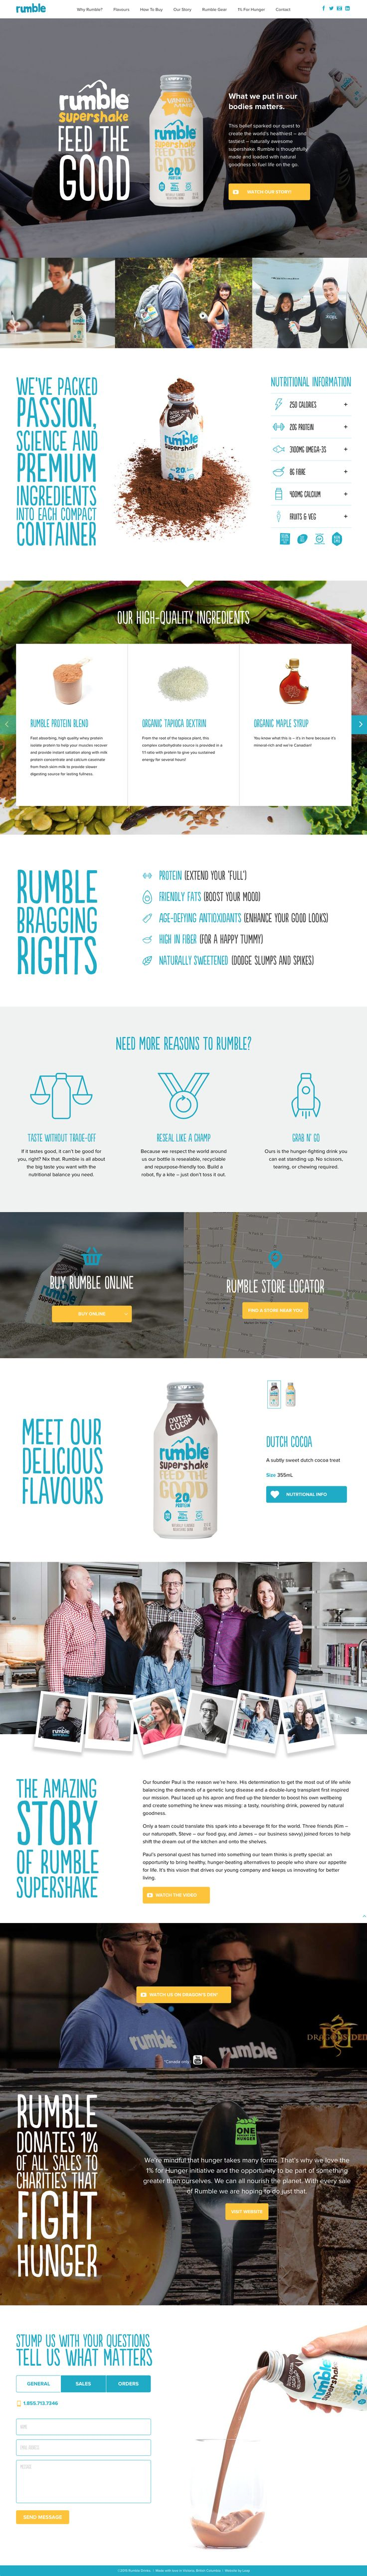 Rumble Supershake. Feed anywhere, anytime. #webdesign #design (View more at www.aldenchong.com)